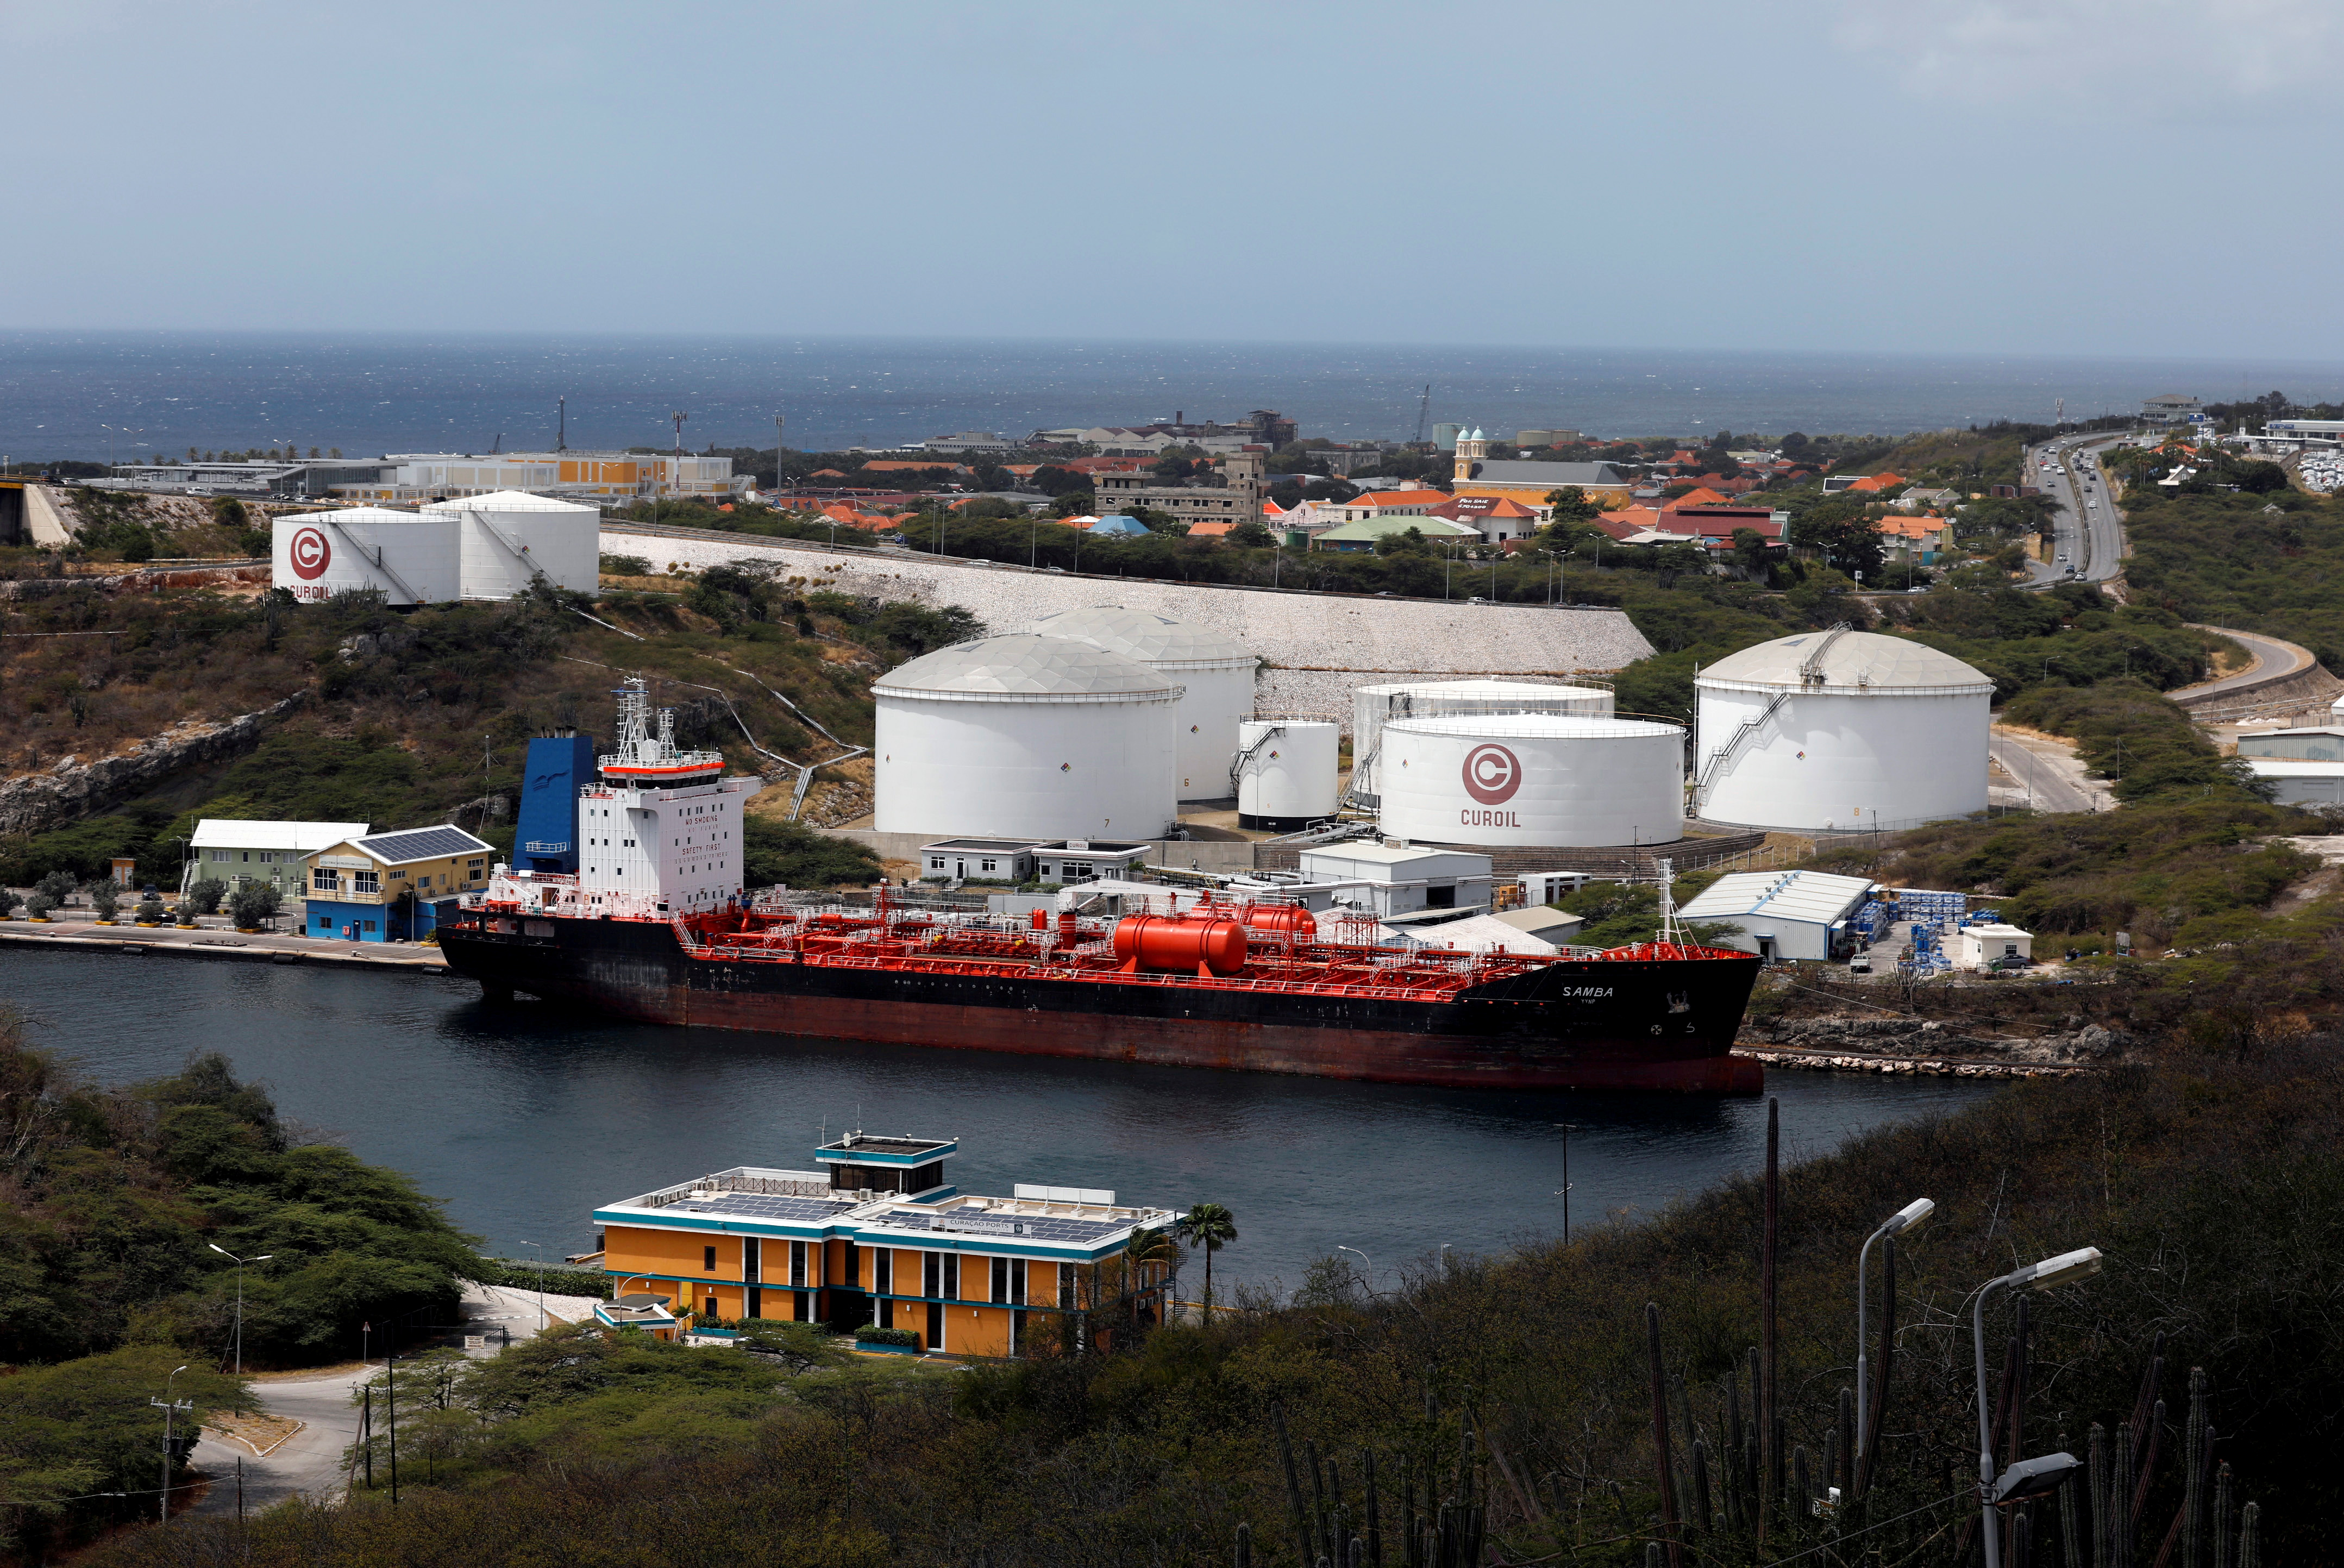 A crude oil tanker is docked at Isla Oil Refinery PDVSA terminal in Willemstad on the island of Curacao, February 22, 2019. REUTERS/Henry Romero/File Photo